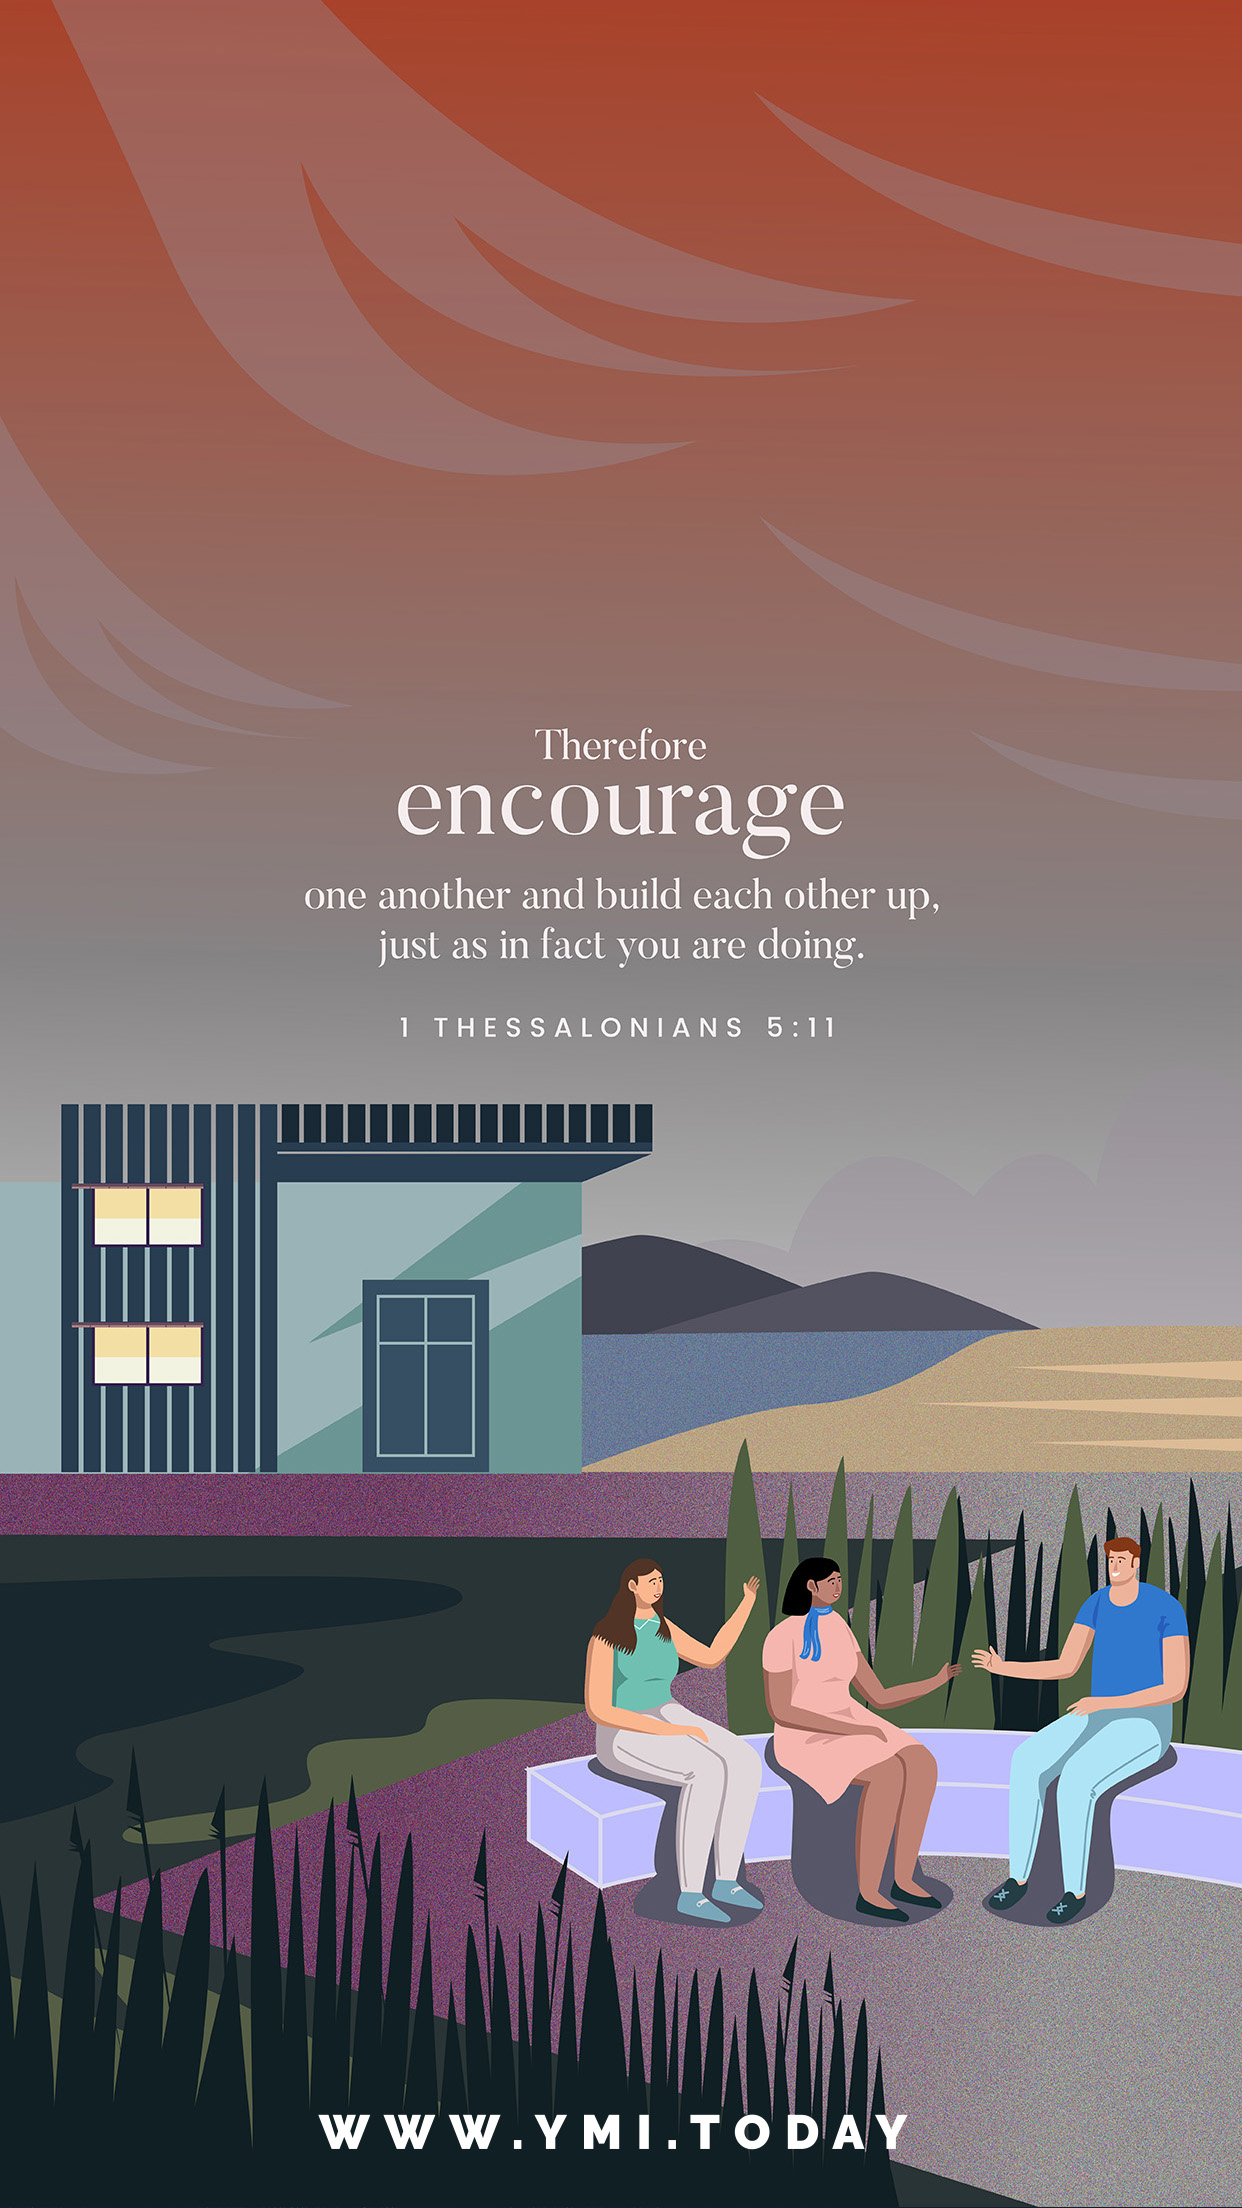 YMI February 2018 Phone Lockscreen - Therefore encourage one another and build each other up, just as in fact you are doing. - 1 Thessalonians 5:11